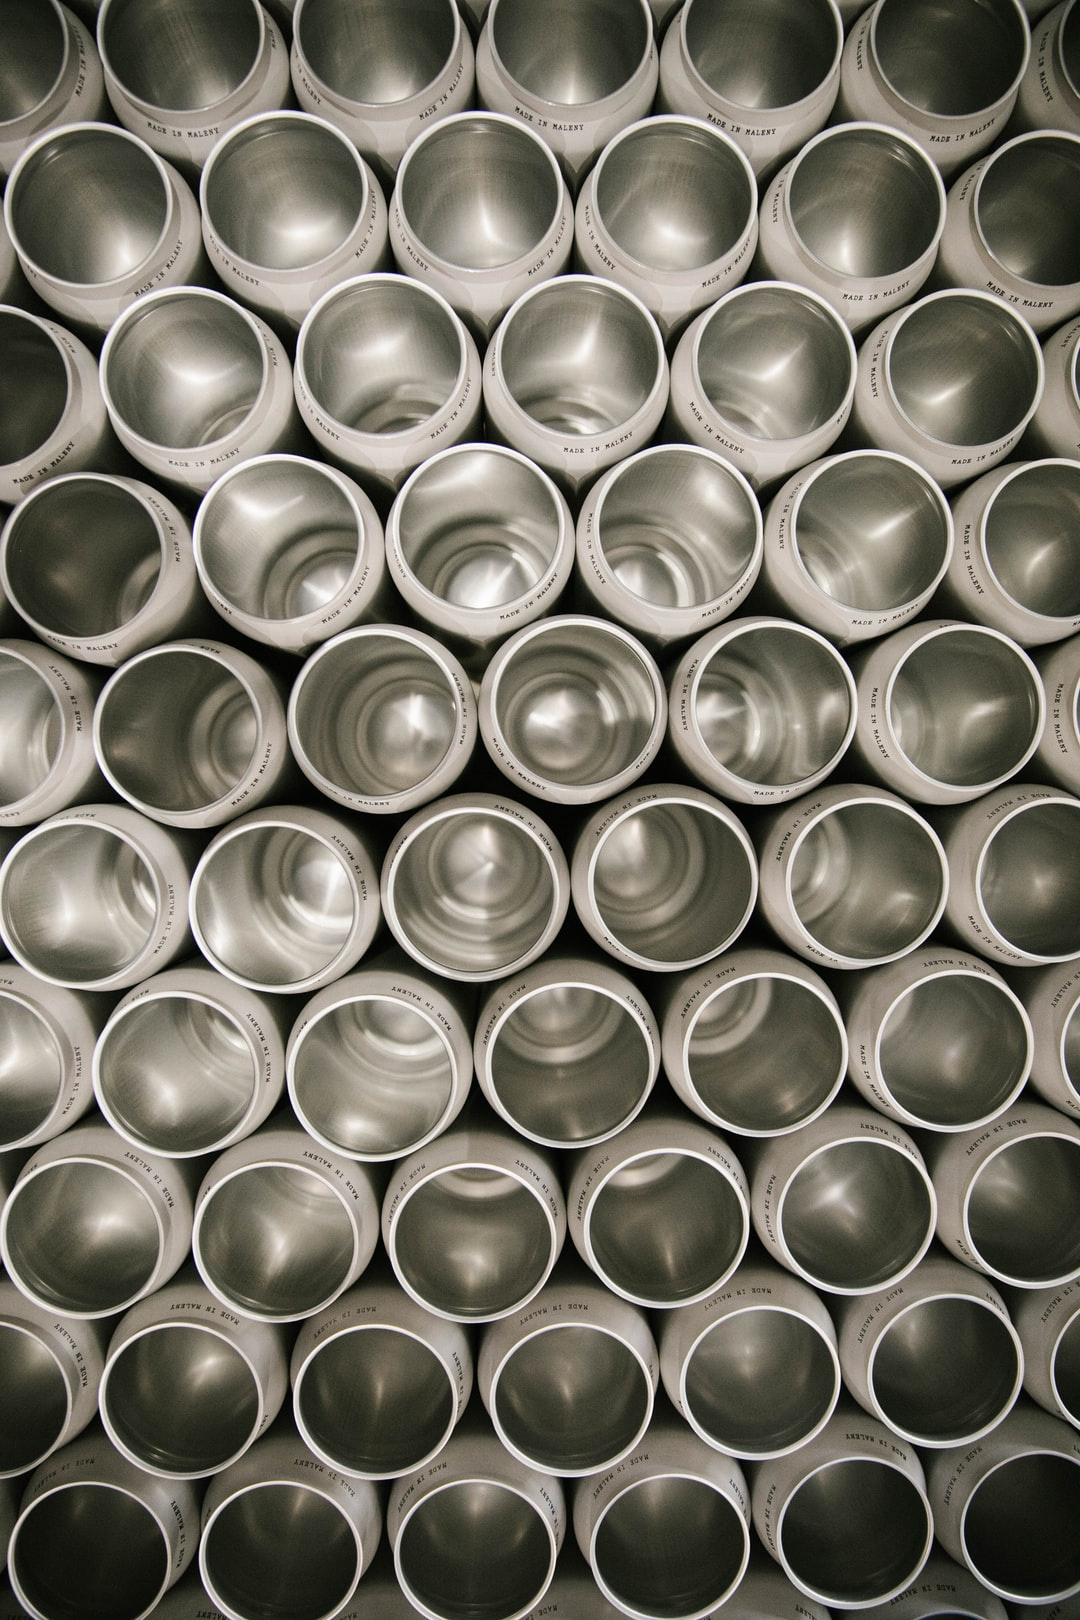 Cans ready to be filled with Brouhaha Brewery Strawberry Rhubarb Sour